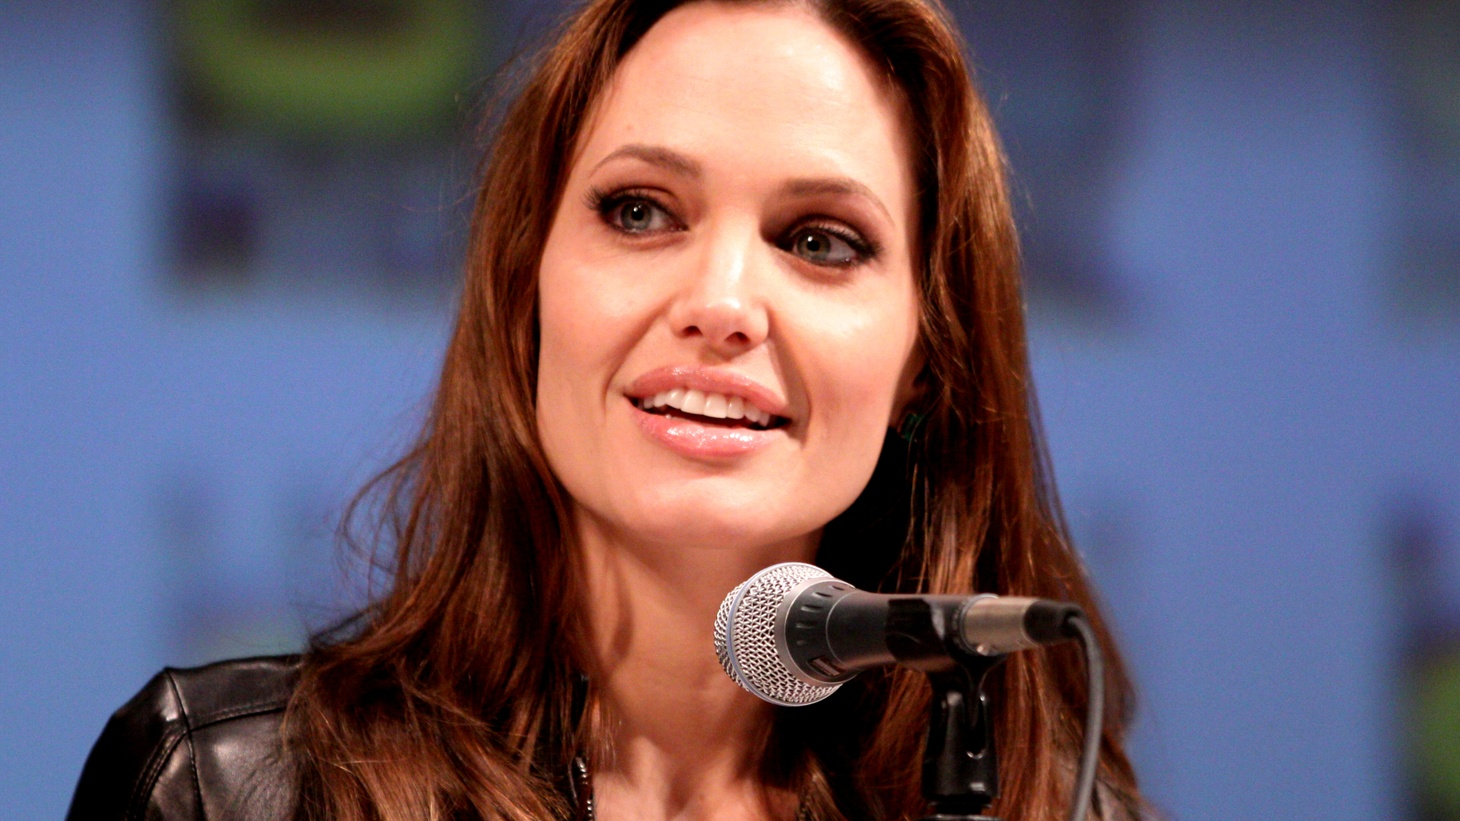 It was quite a shock two years ago when actress Angelina Jolie announced she'd undergone a double mastectomy. Jolie revealed she was a carrier of a gene, BRCA1, which she said gave her an 87 percent chance of getting breast cancer.